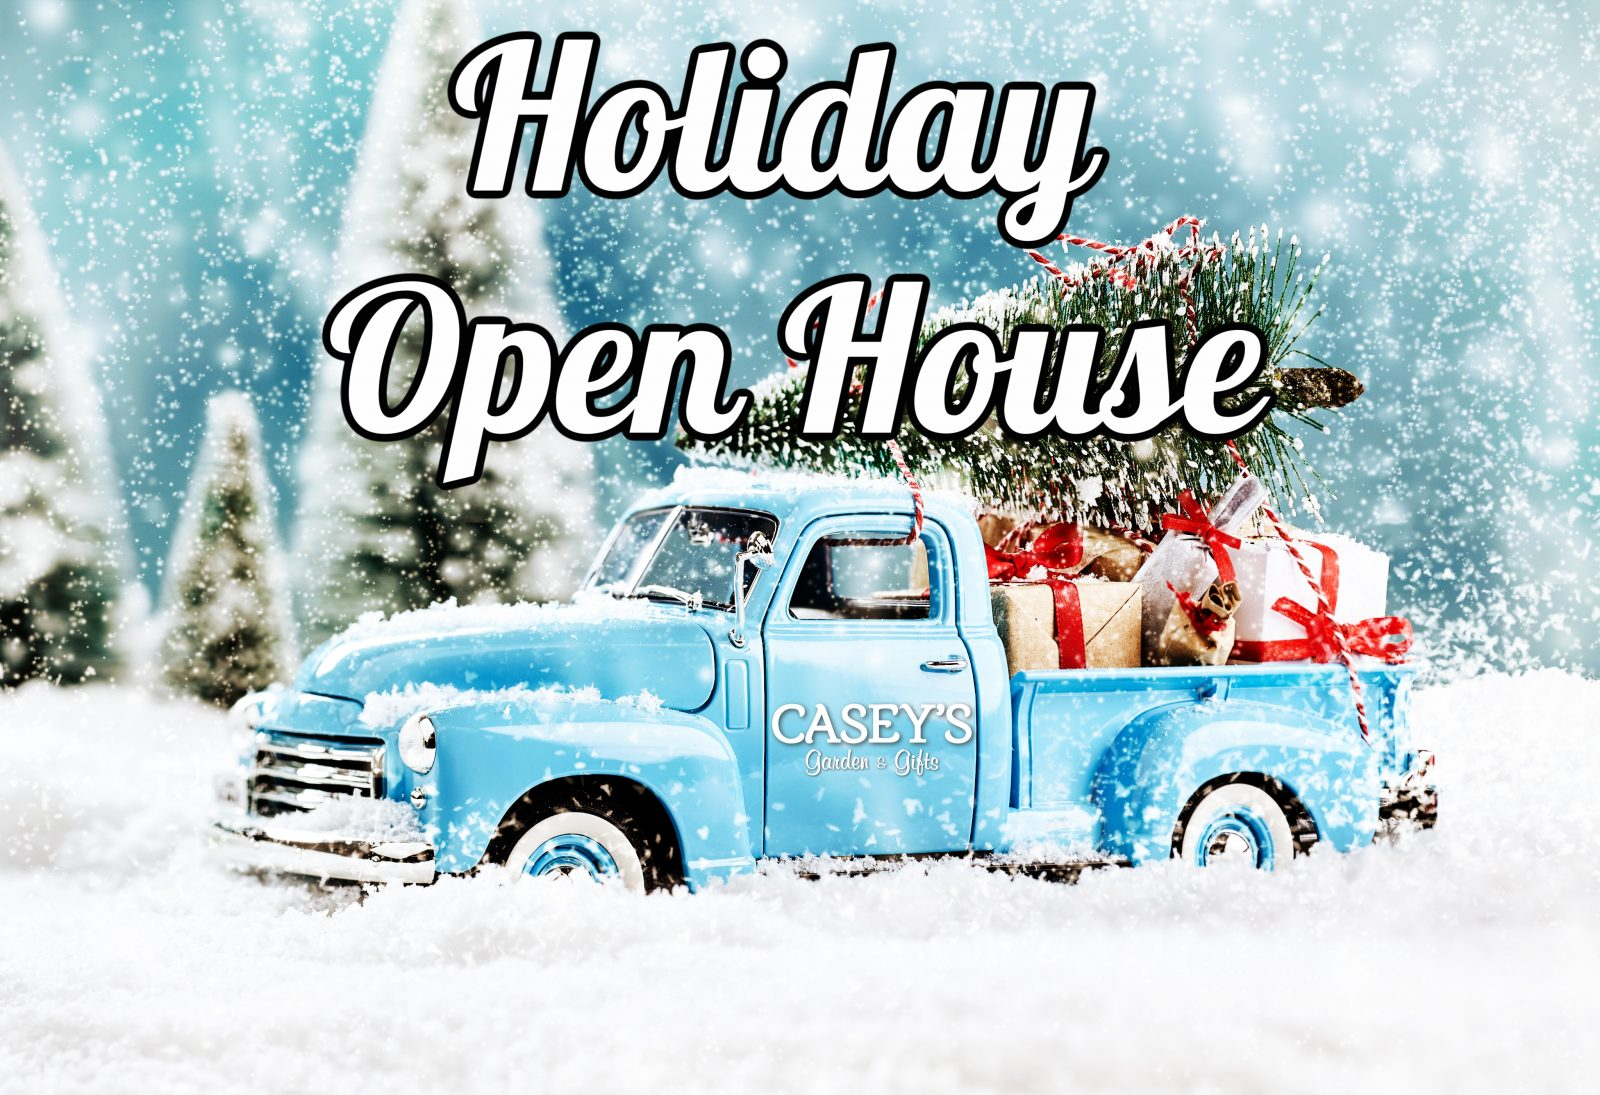 Casey's Holiday Open House